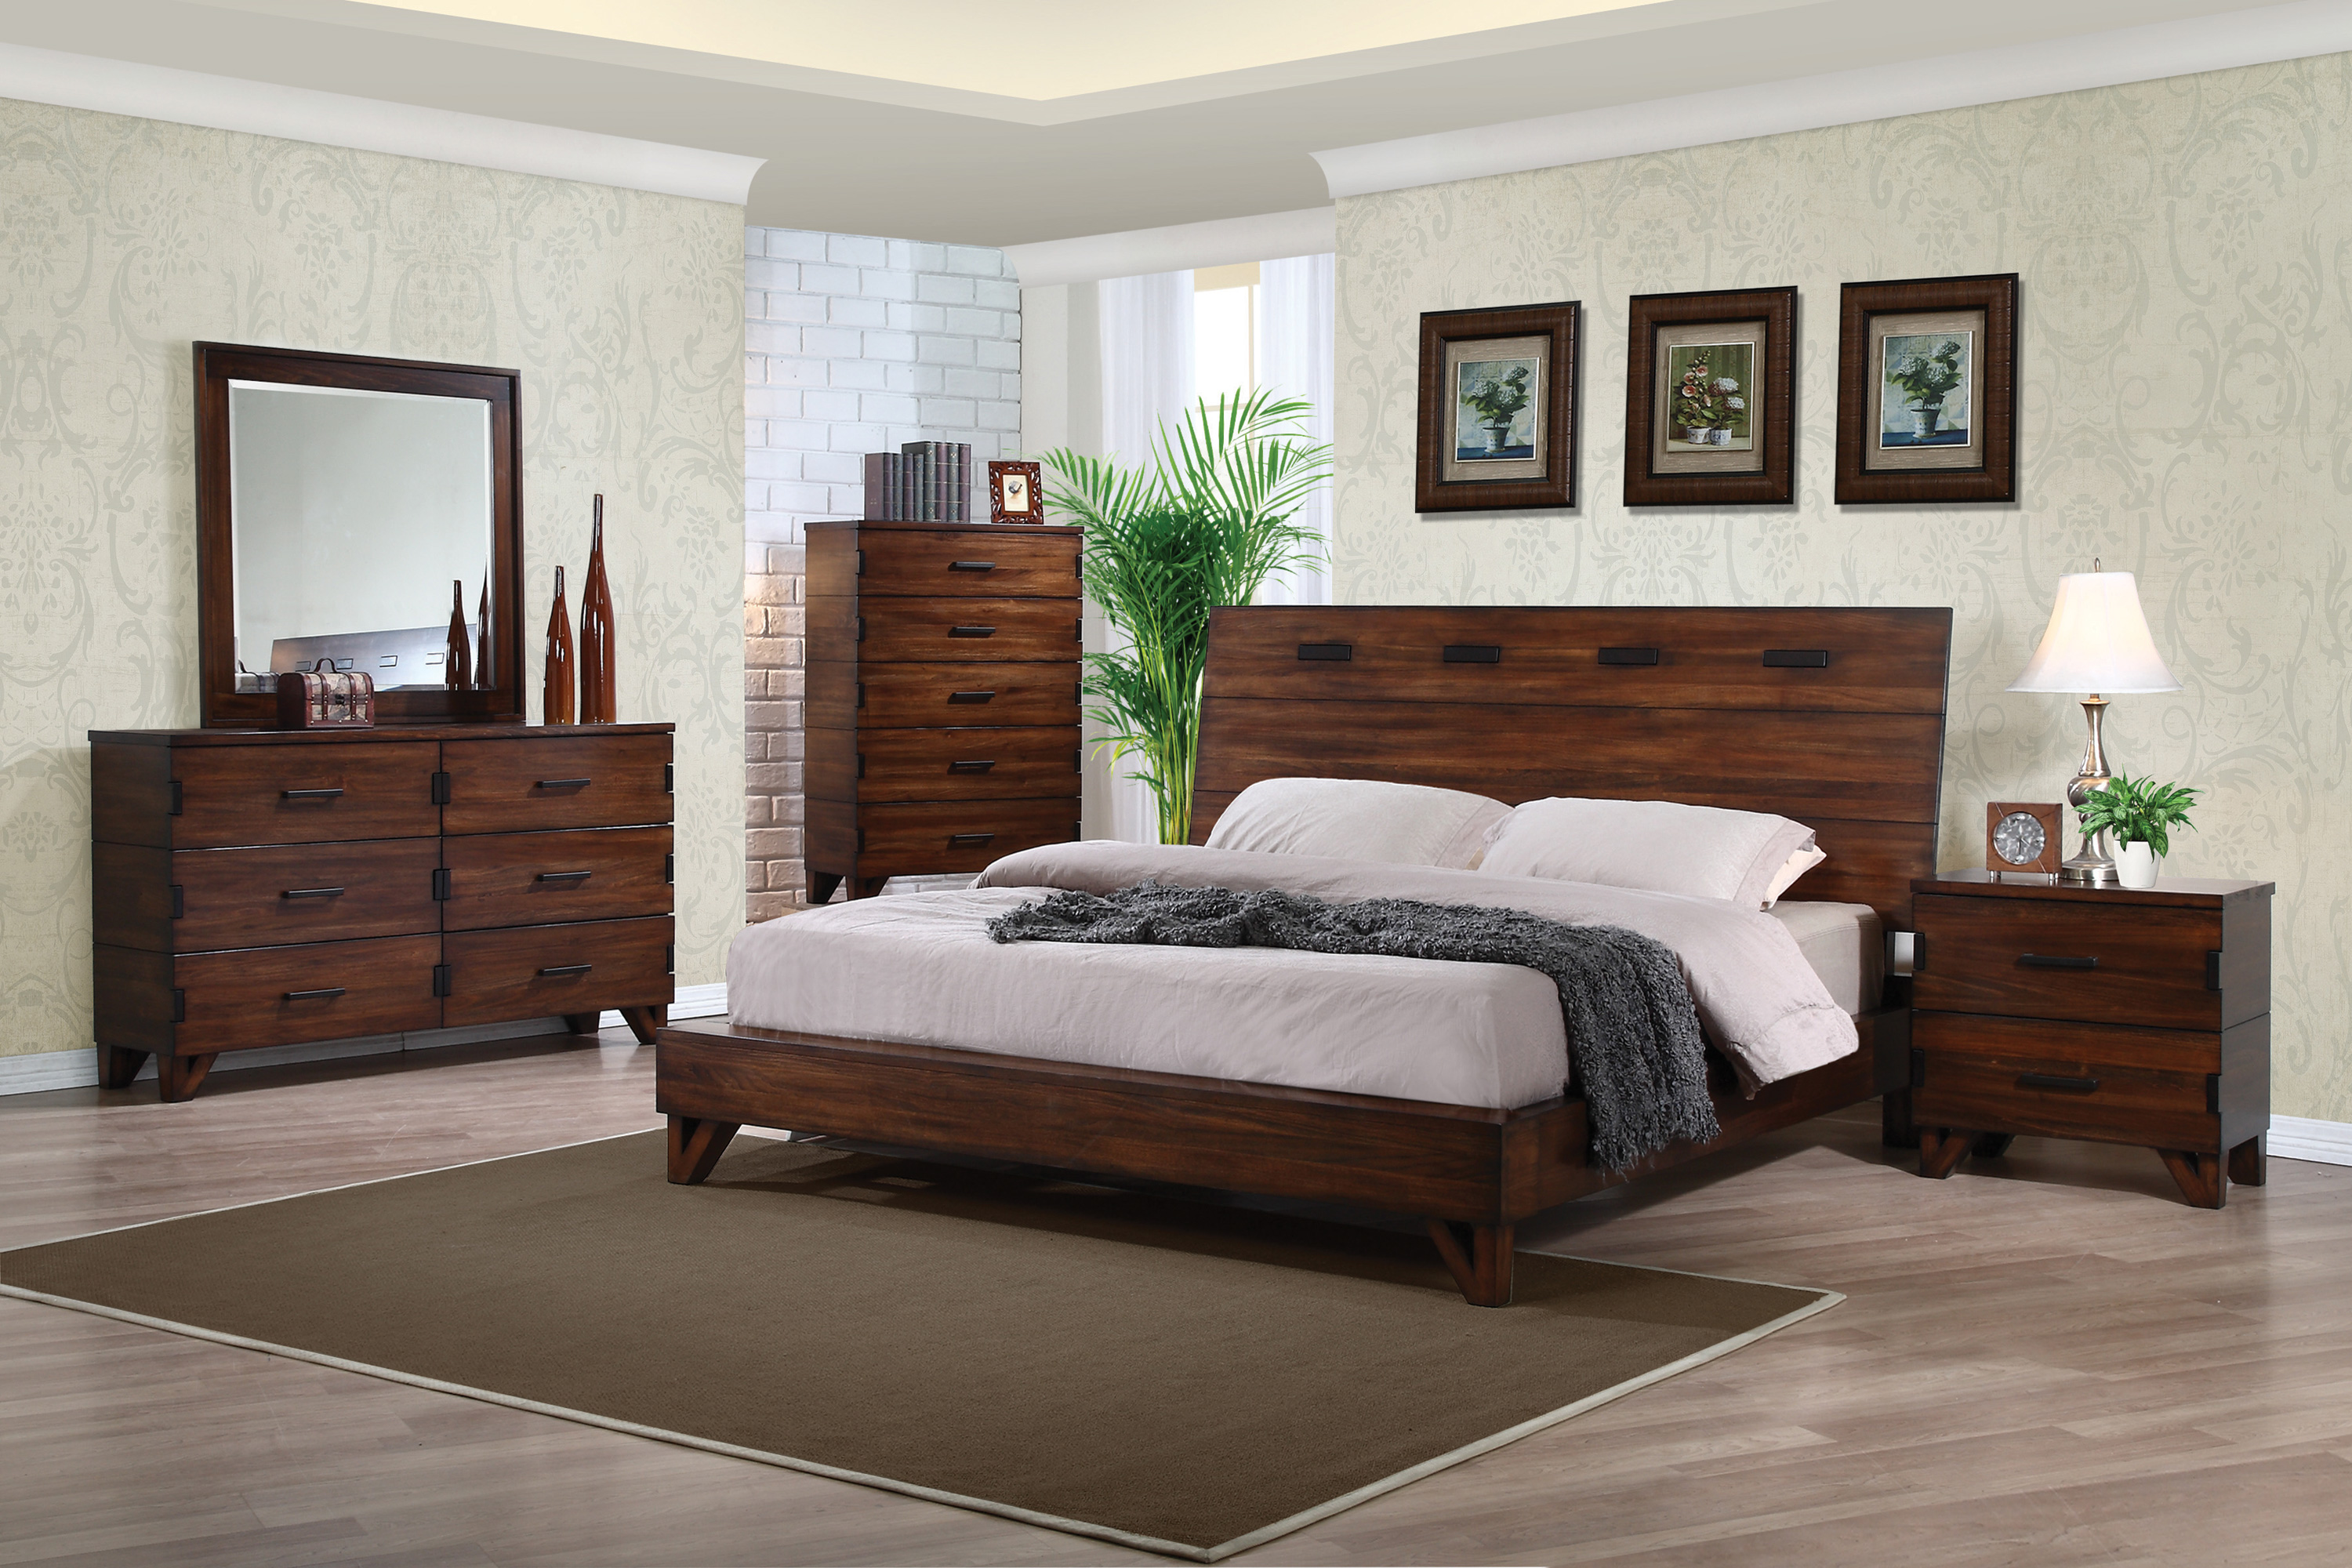 Yorkshire Coffee Bean Bedroom Collection Las Vegas Furniture Store Modern Home Furniture